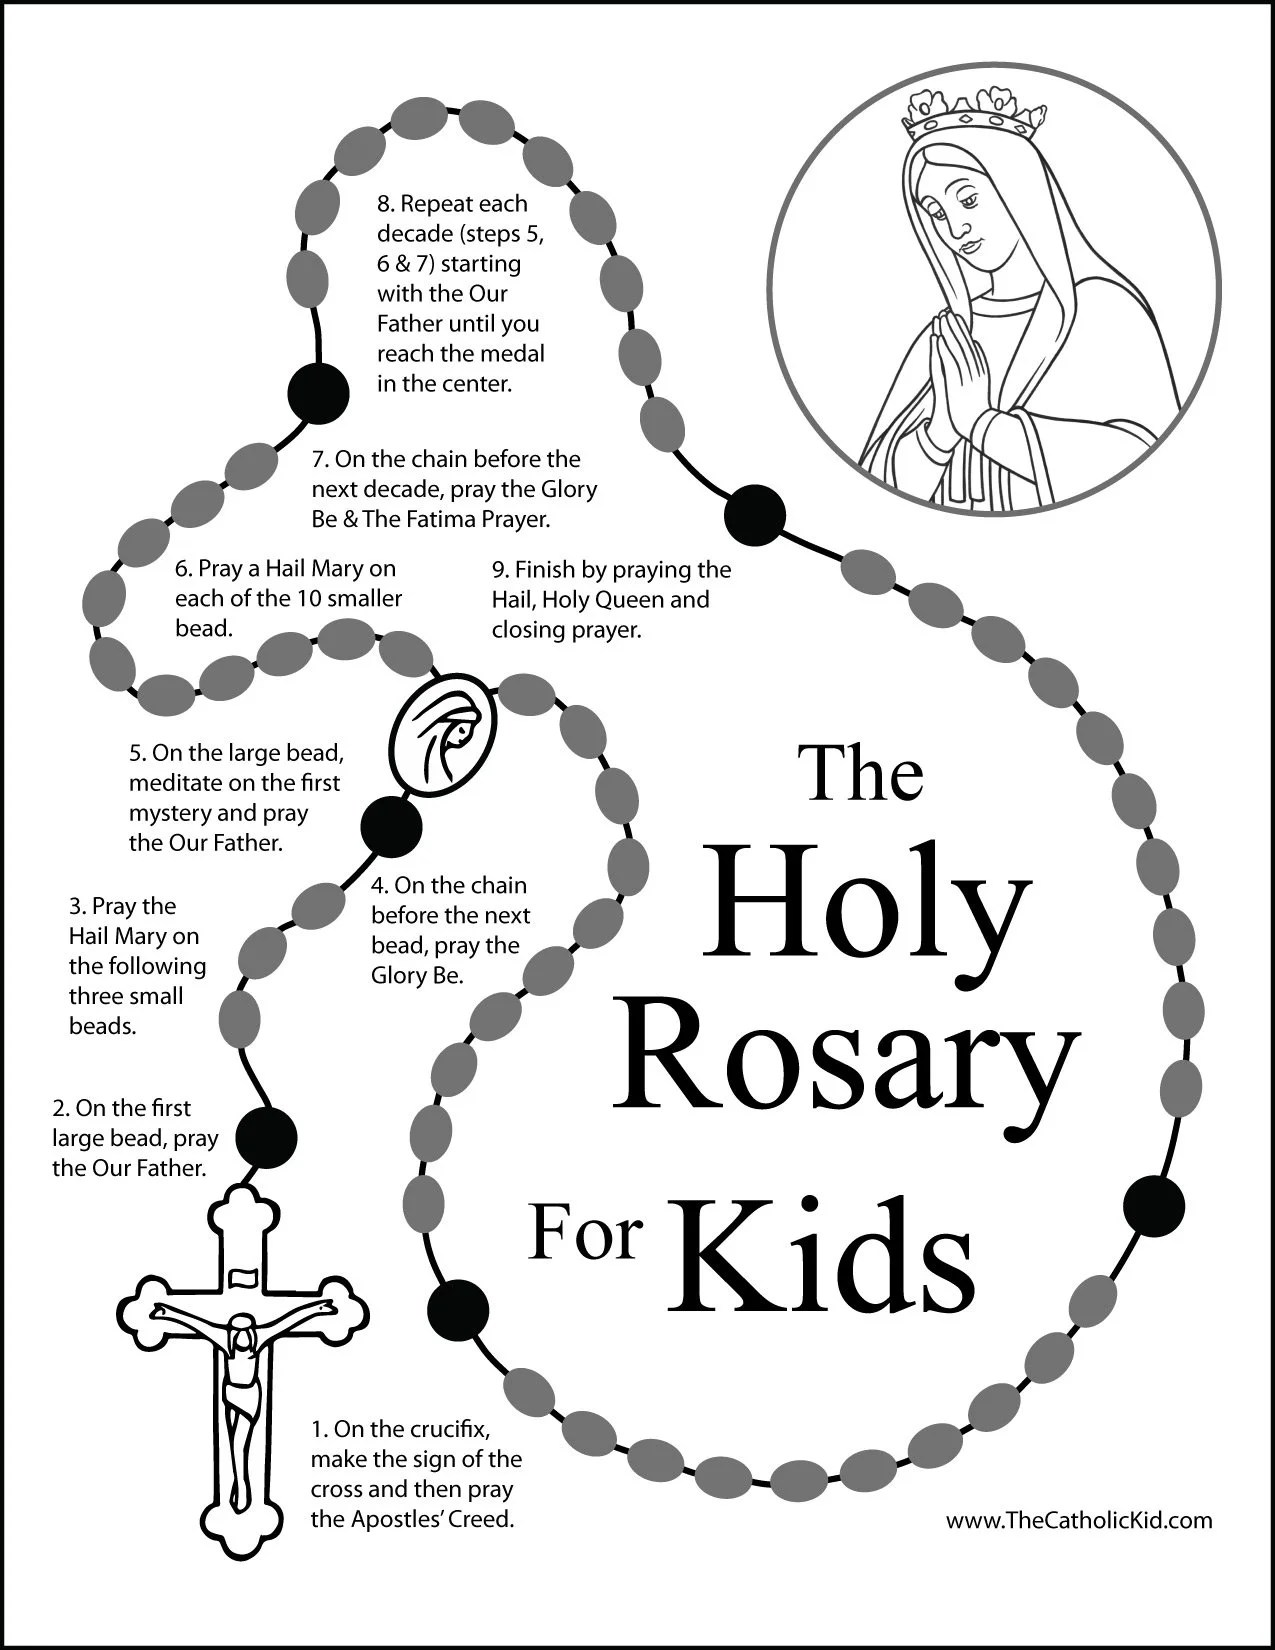 How To Pray The Rosary For Kids